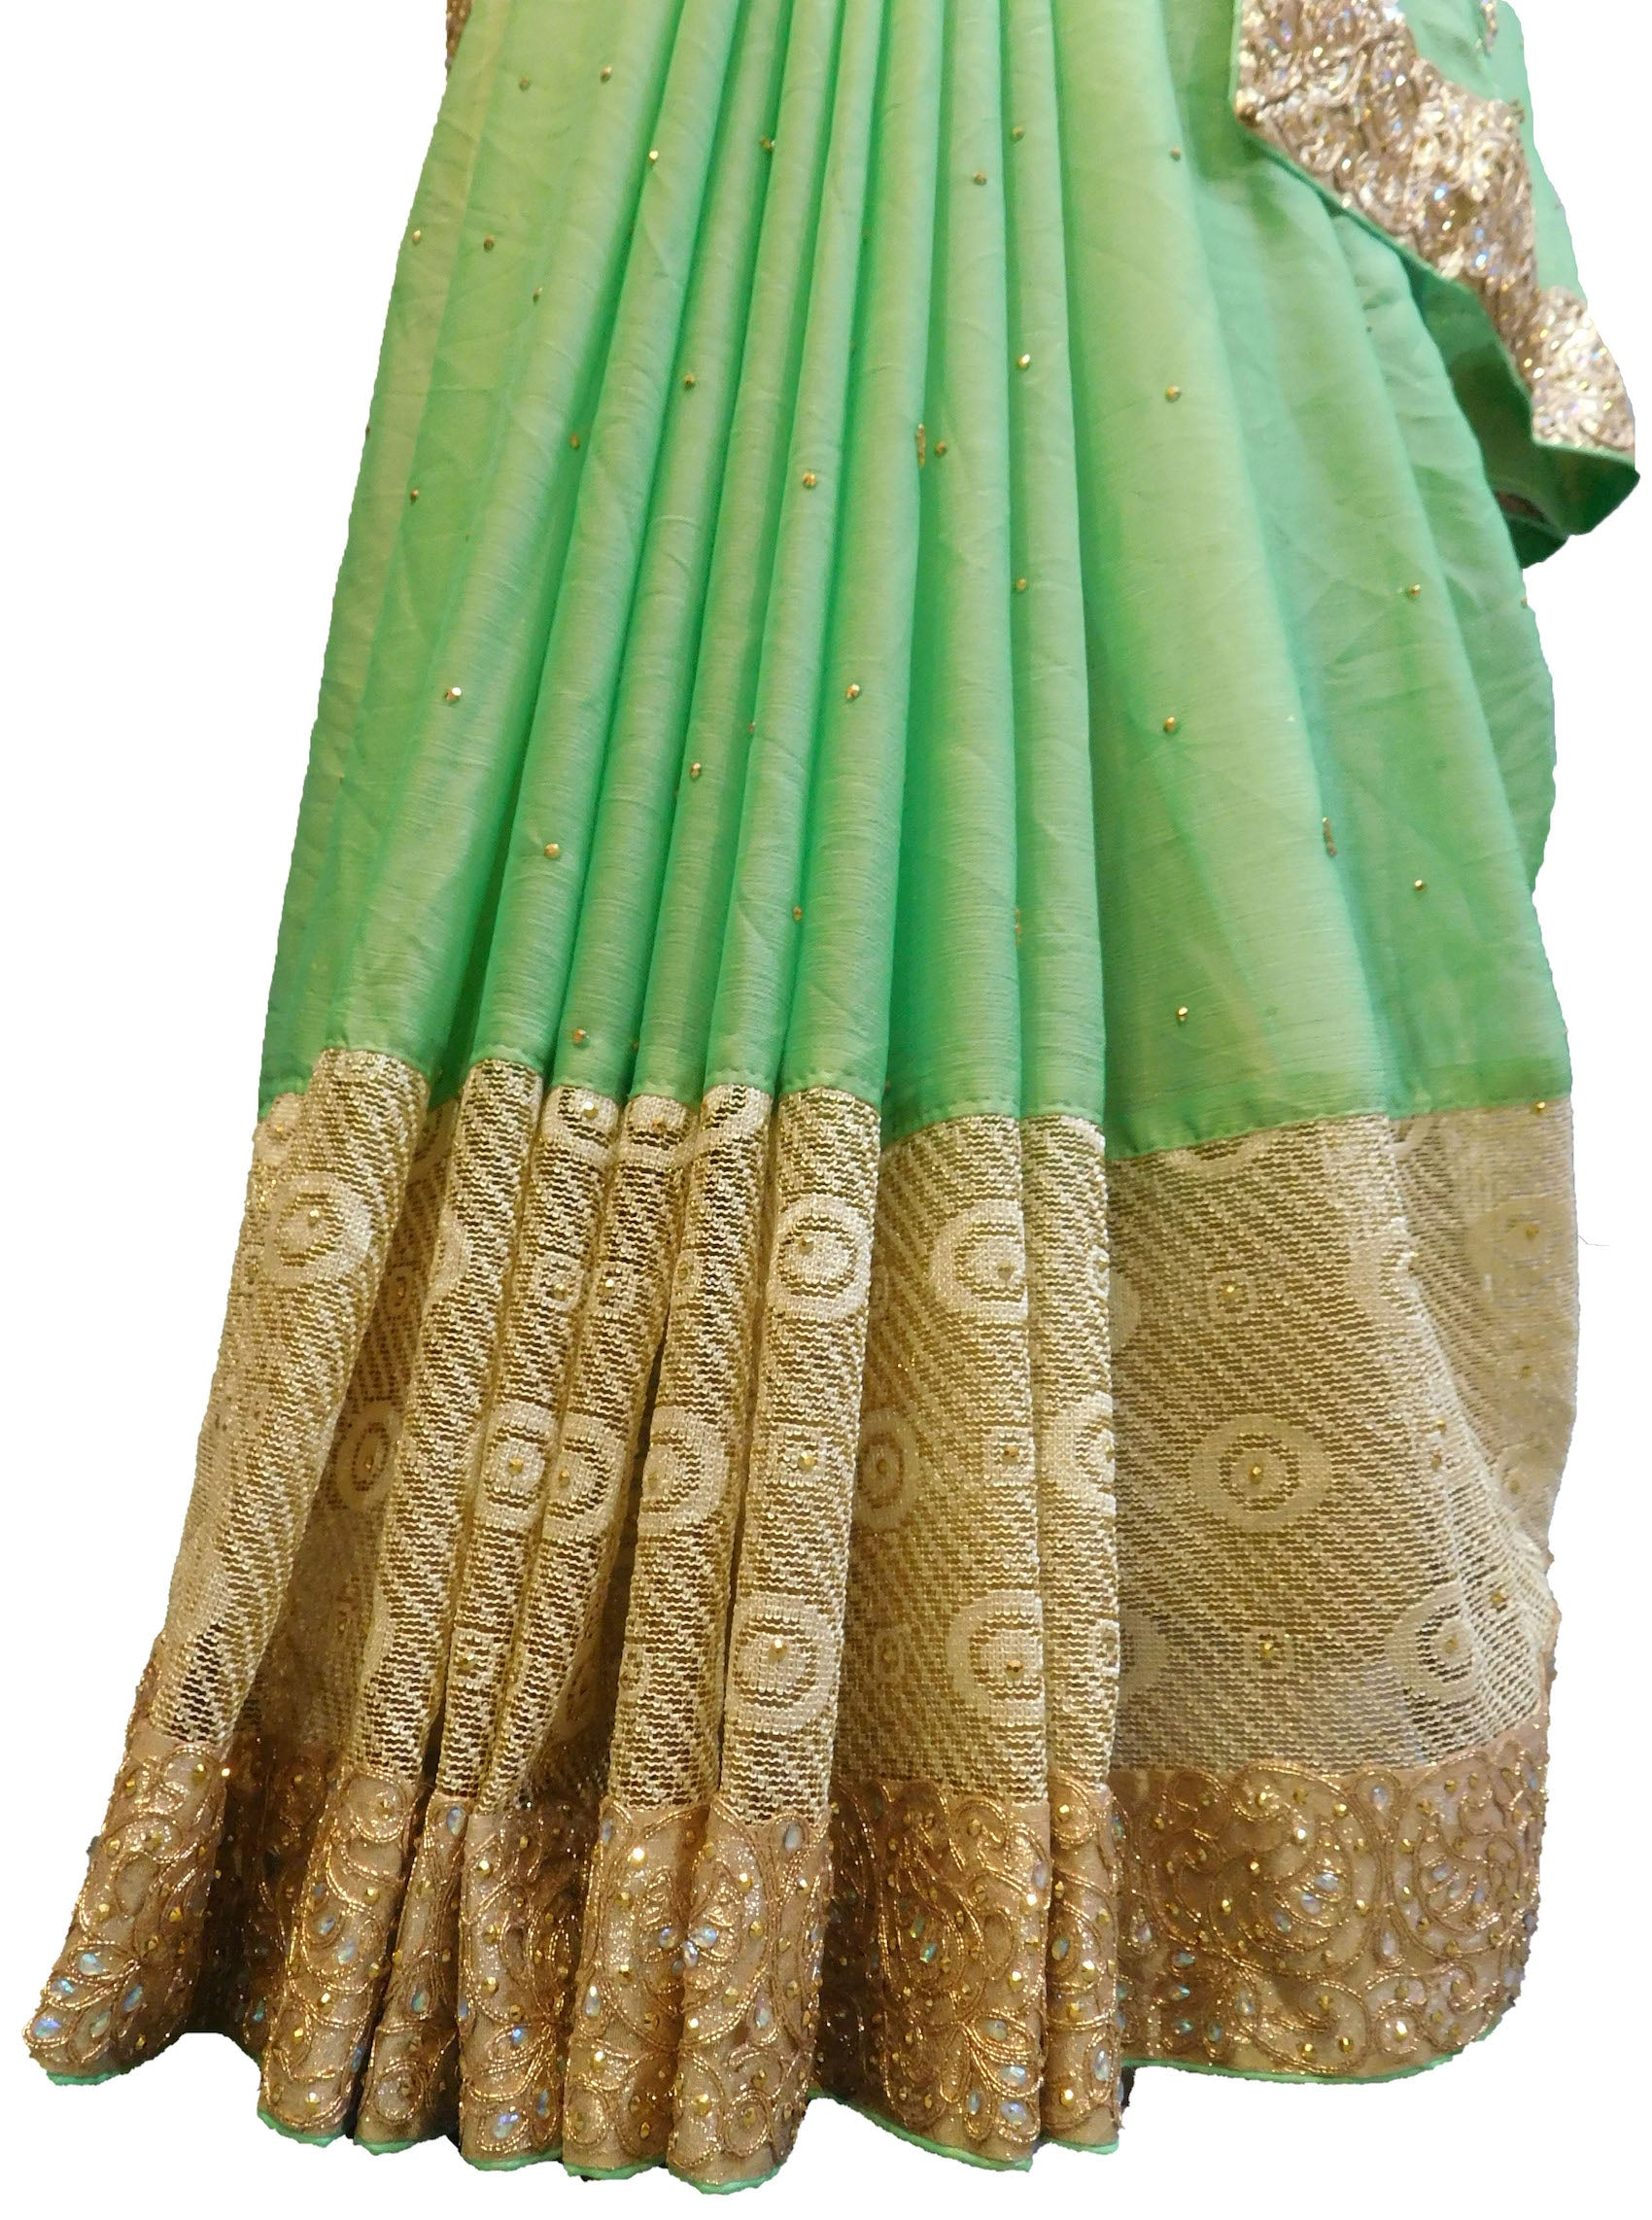 SMSAREE Green Designer Wedding Partywear Georgette Zari & Stone Hand Embroidery Work Bridal Saree Sari With Blouse Piece E658